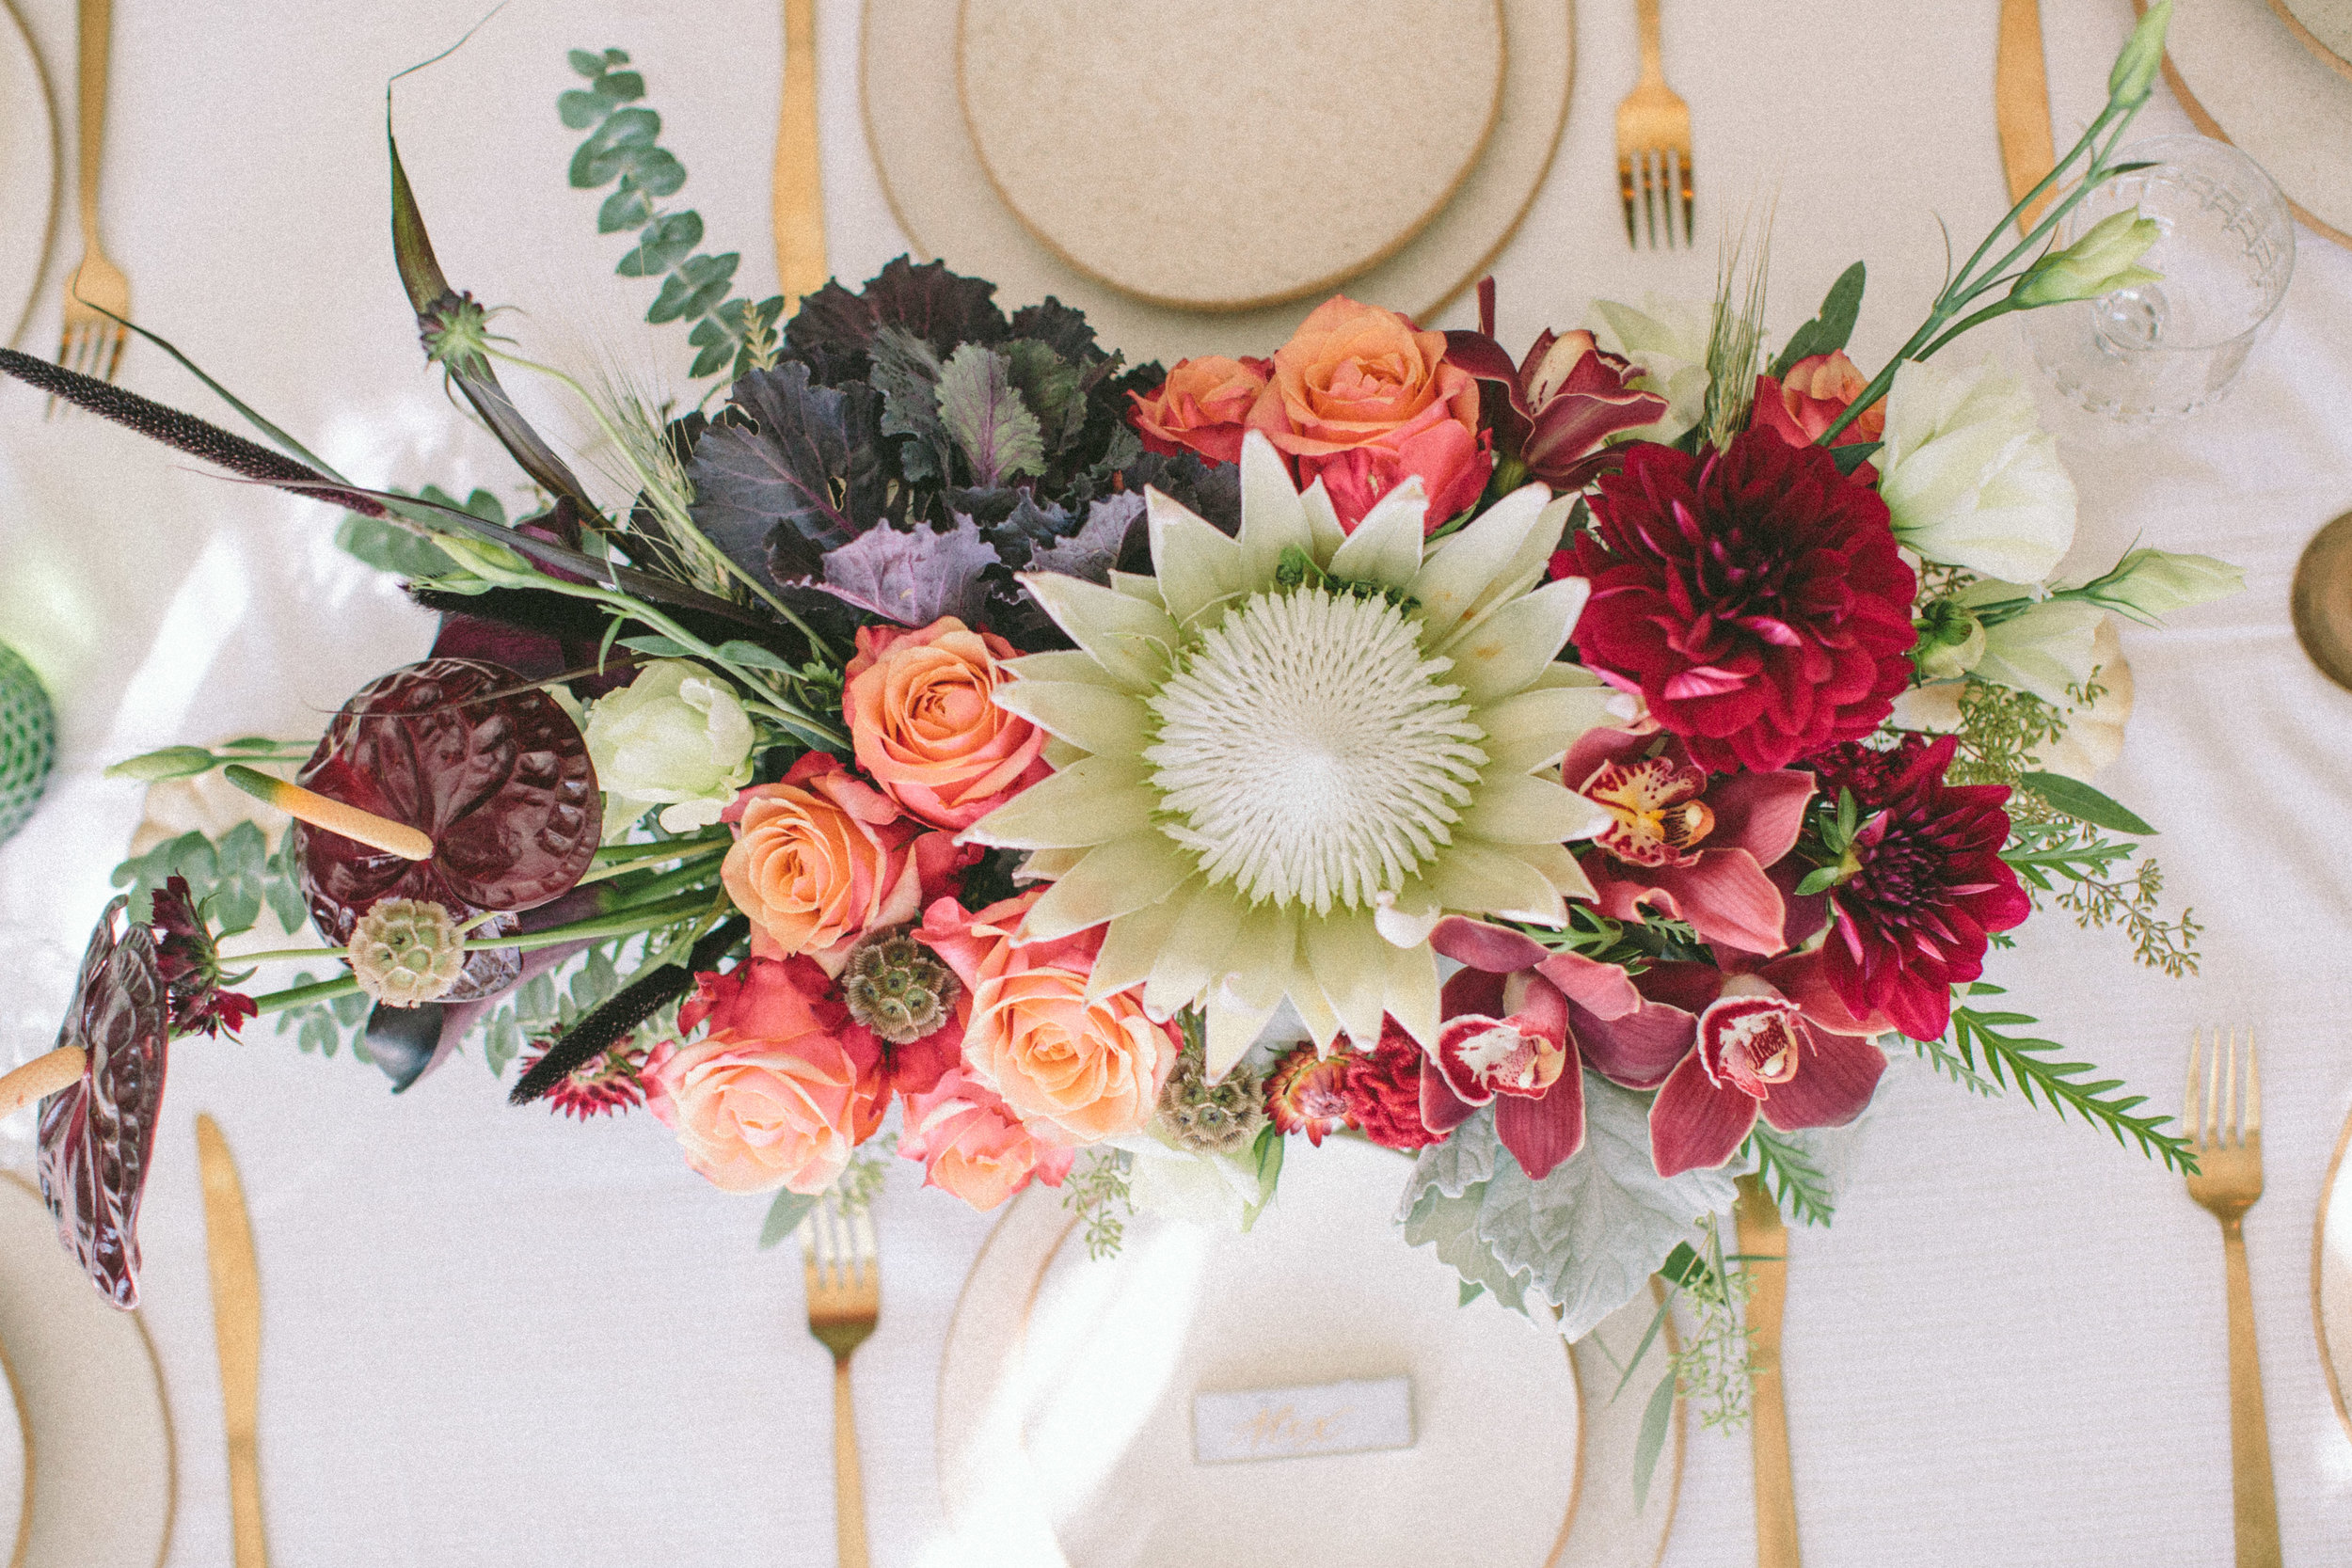 Inspiration for your Thanksgiving tablescaping (Los Angeles Times)